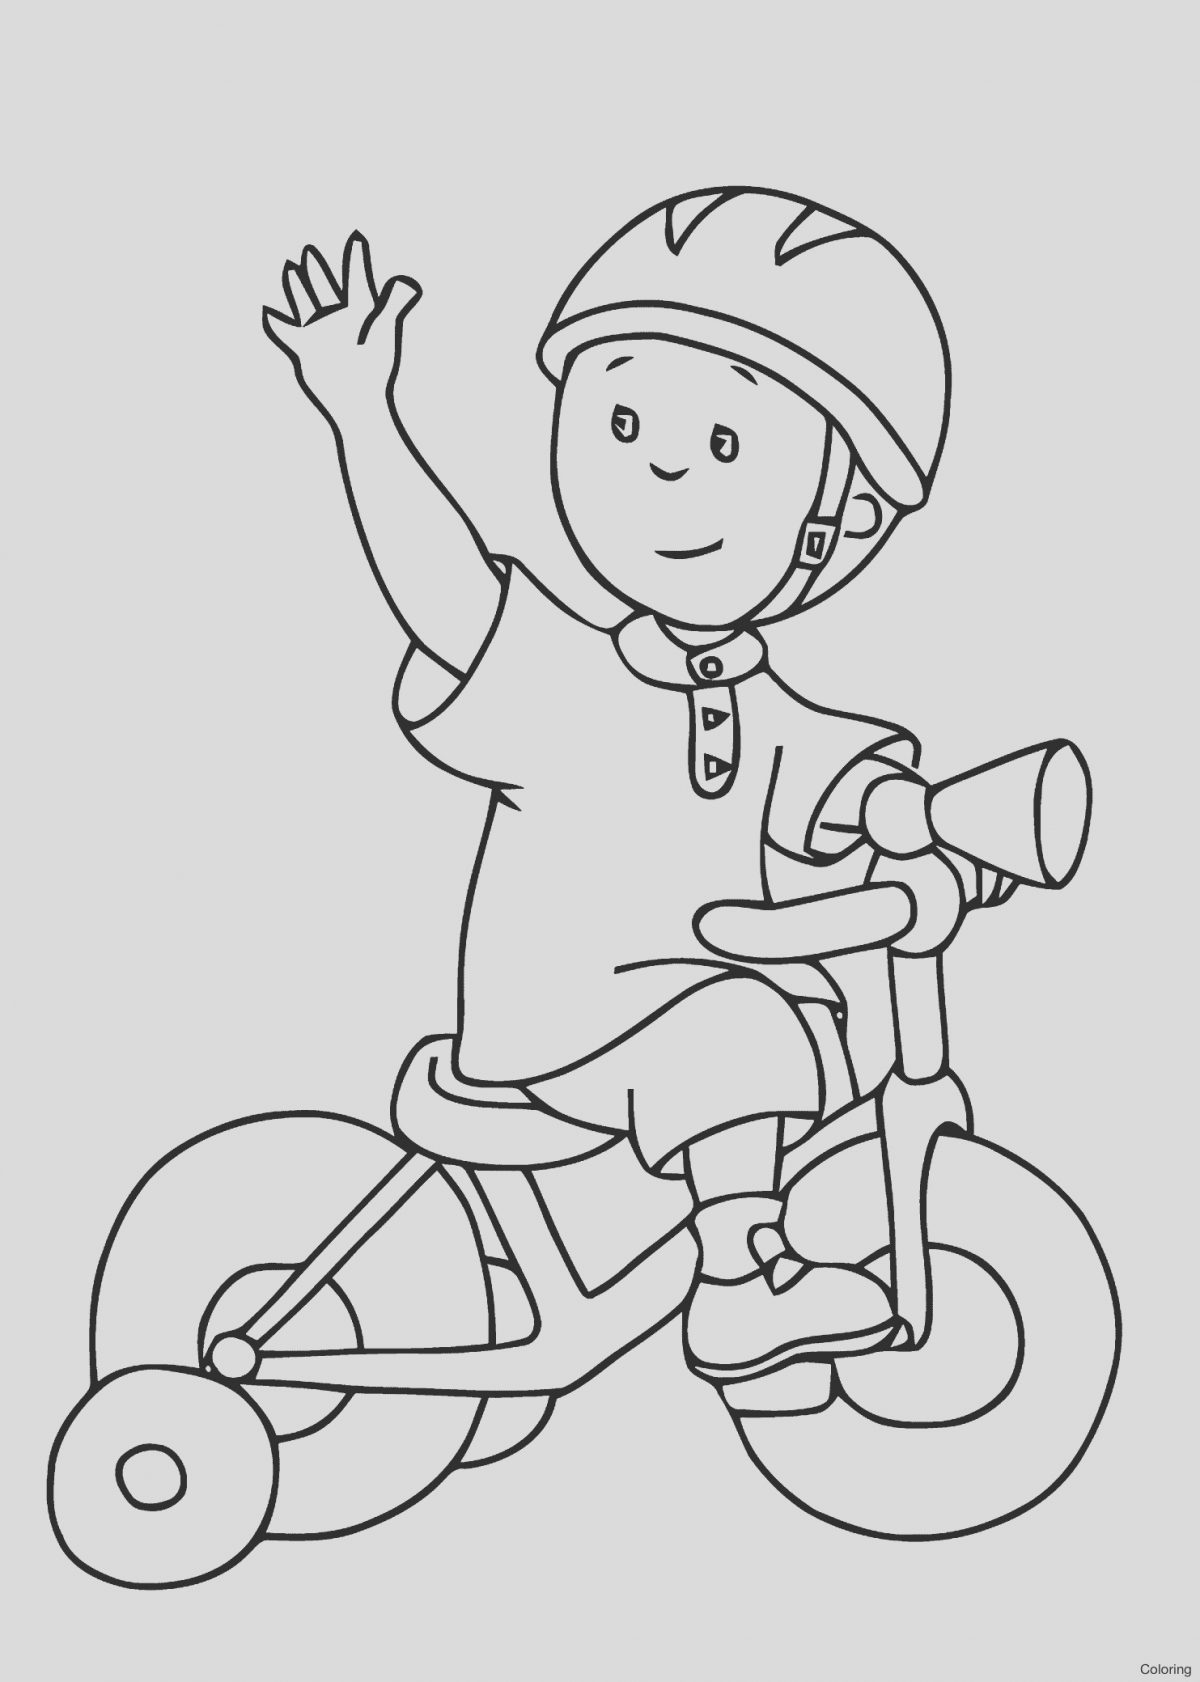 Bike Coloring Book Elegant Kids Bike Drawing at Getdrawings